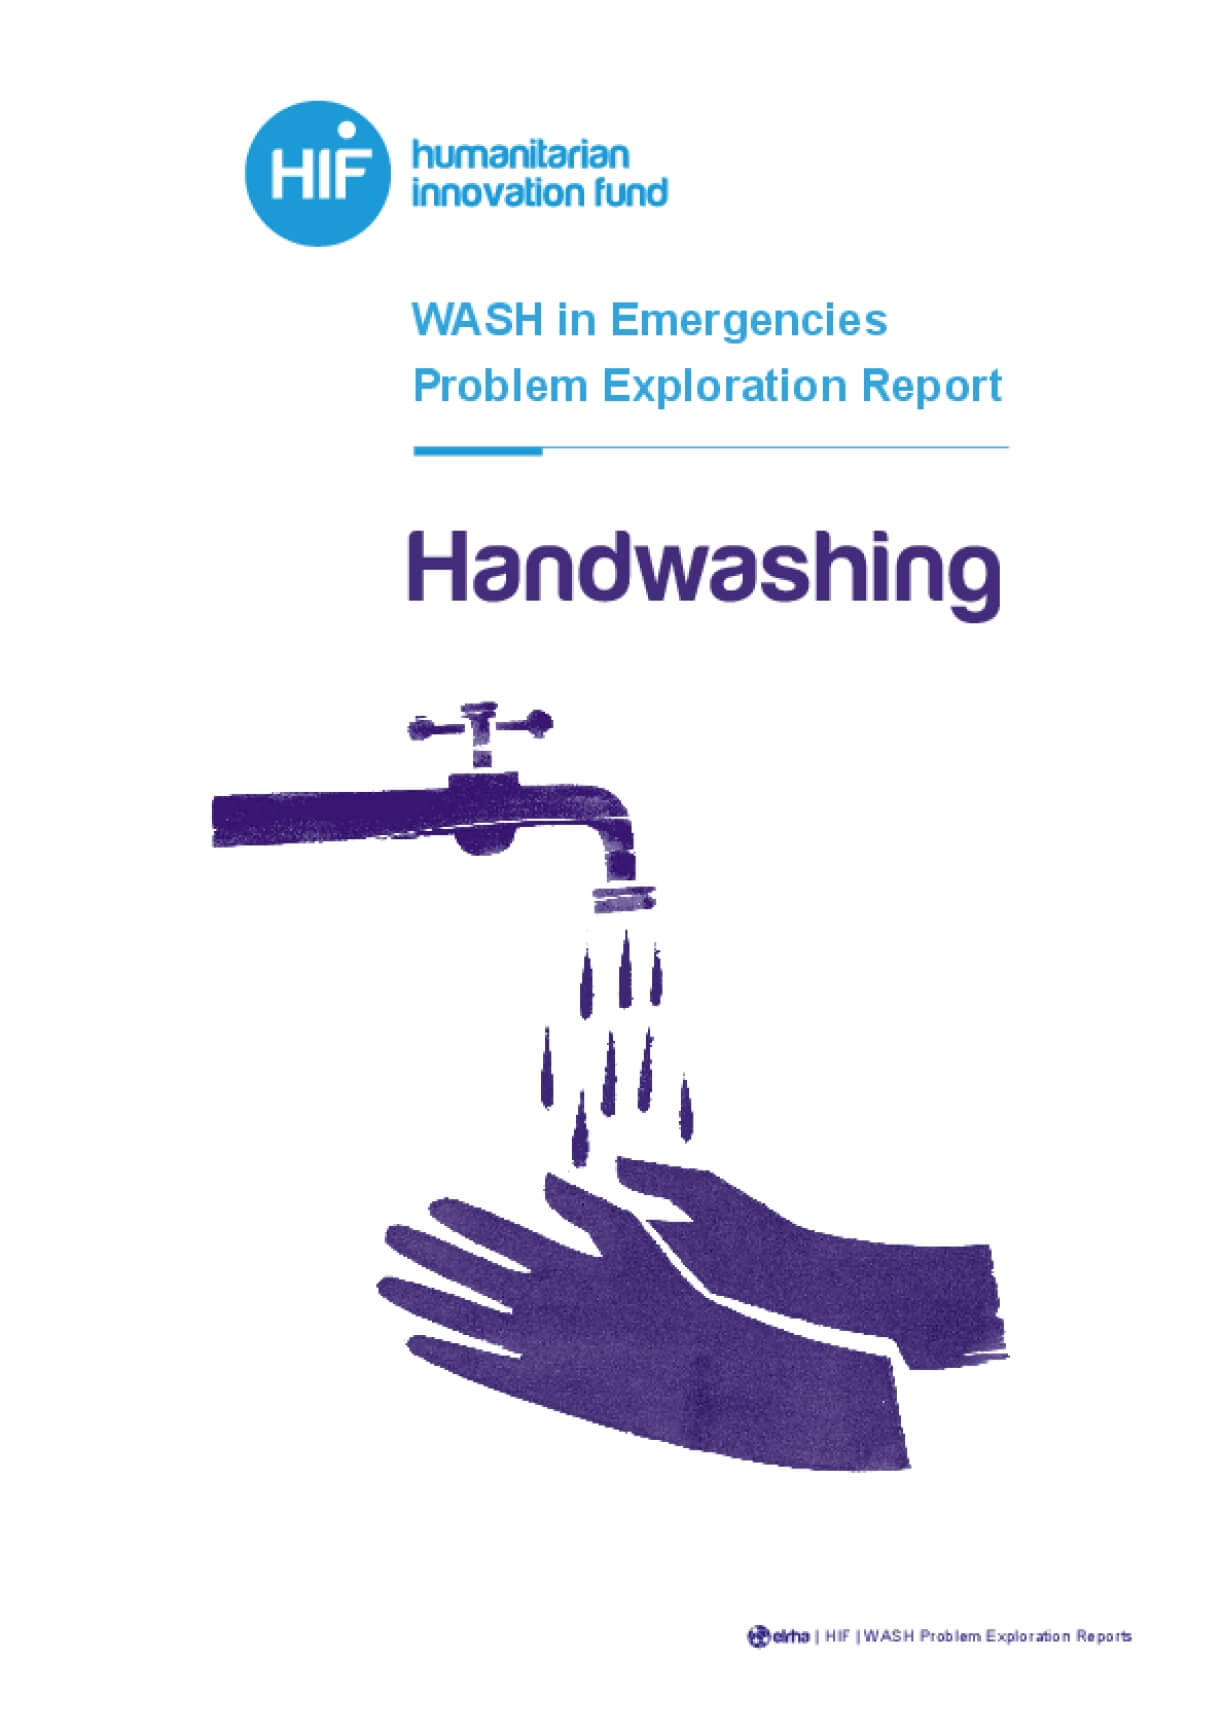 WASH in Emergencies Problem Exploration Report: Handwashing